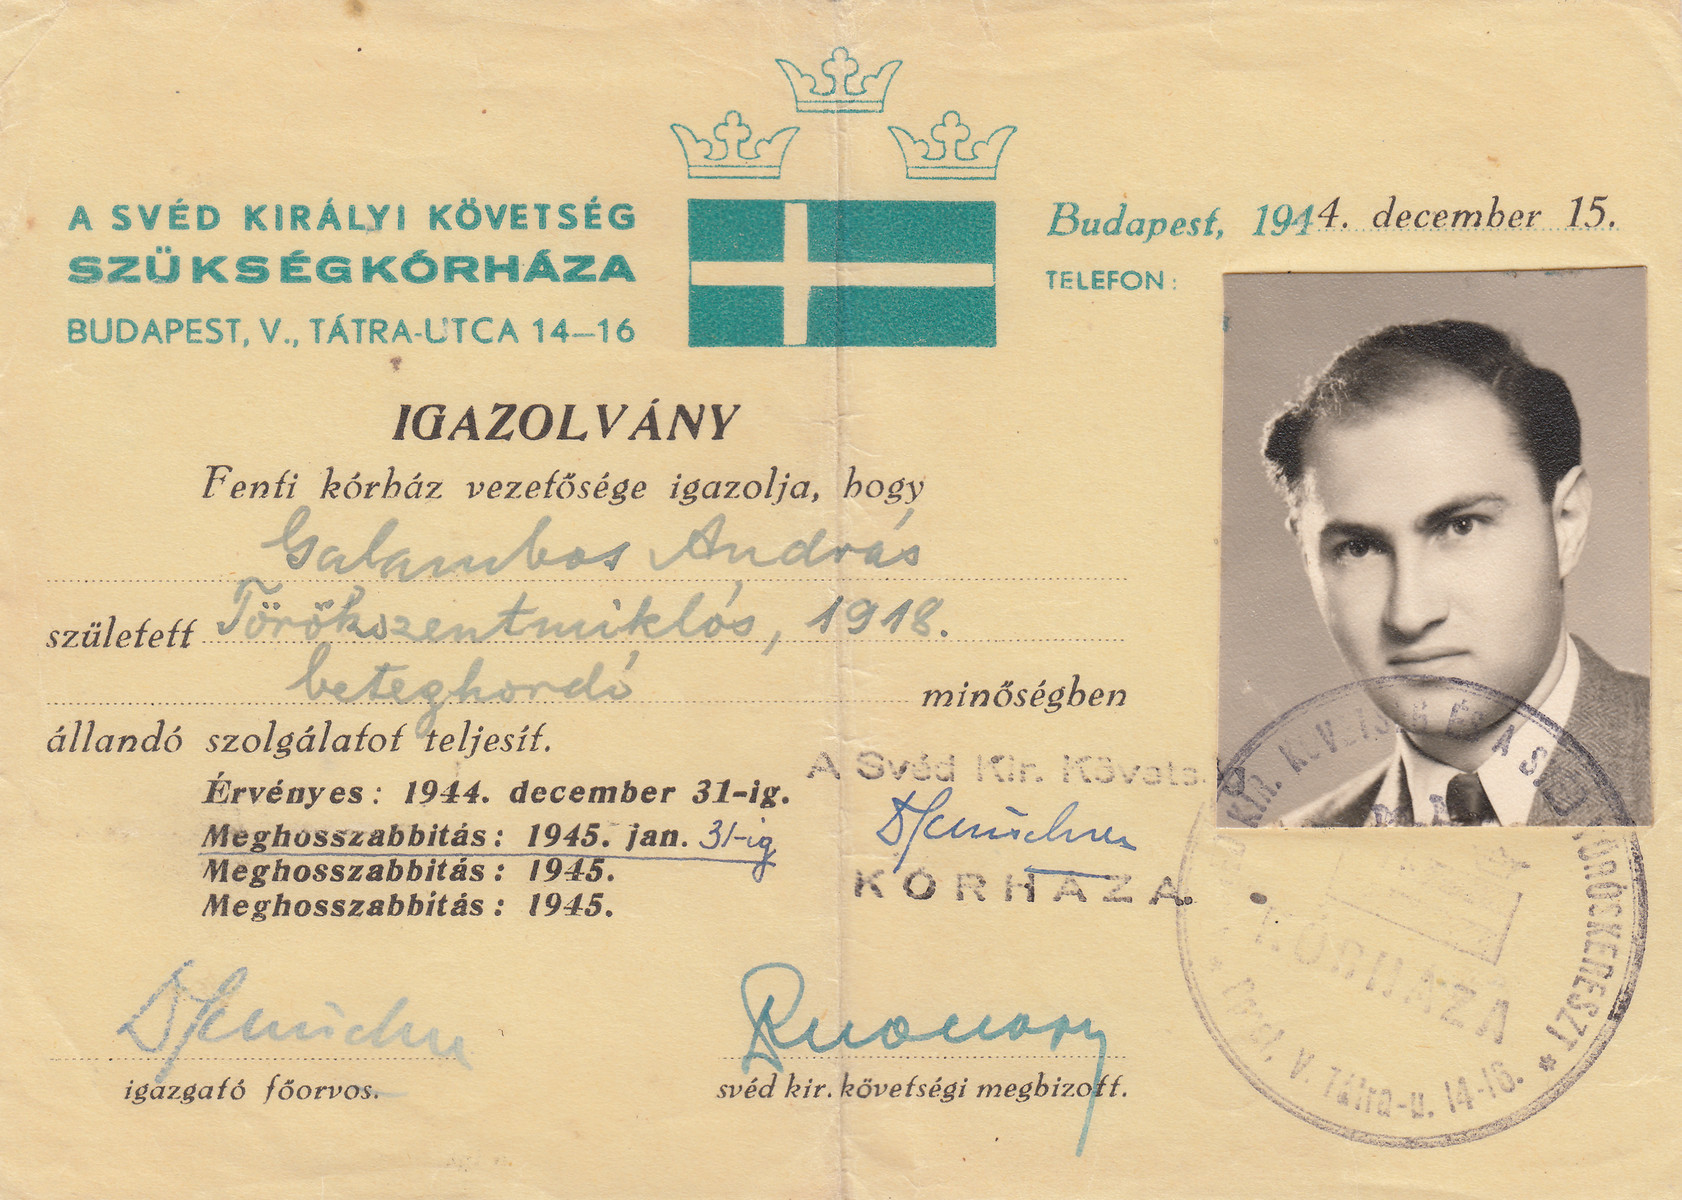 Wallenberg schutzpass issued to Andras Galambos.